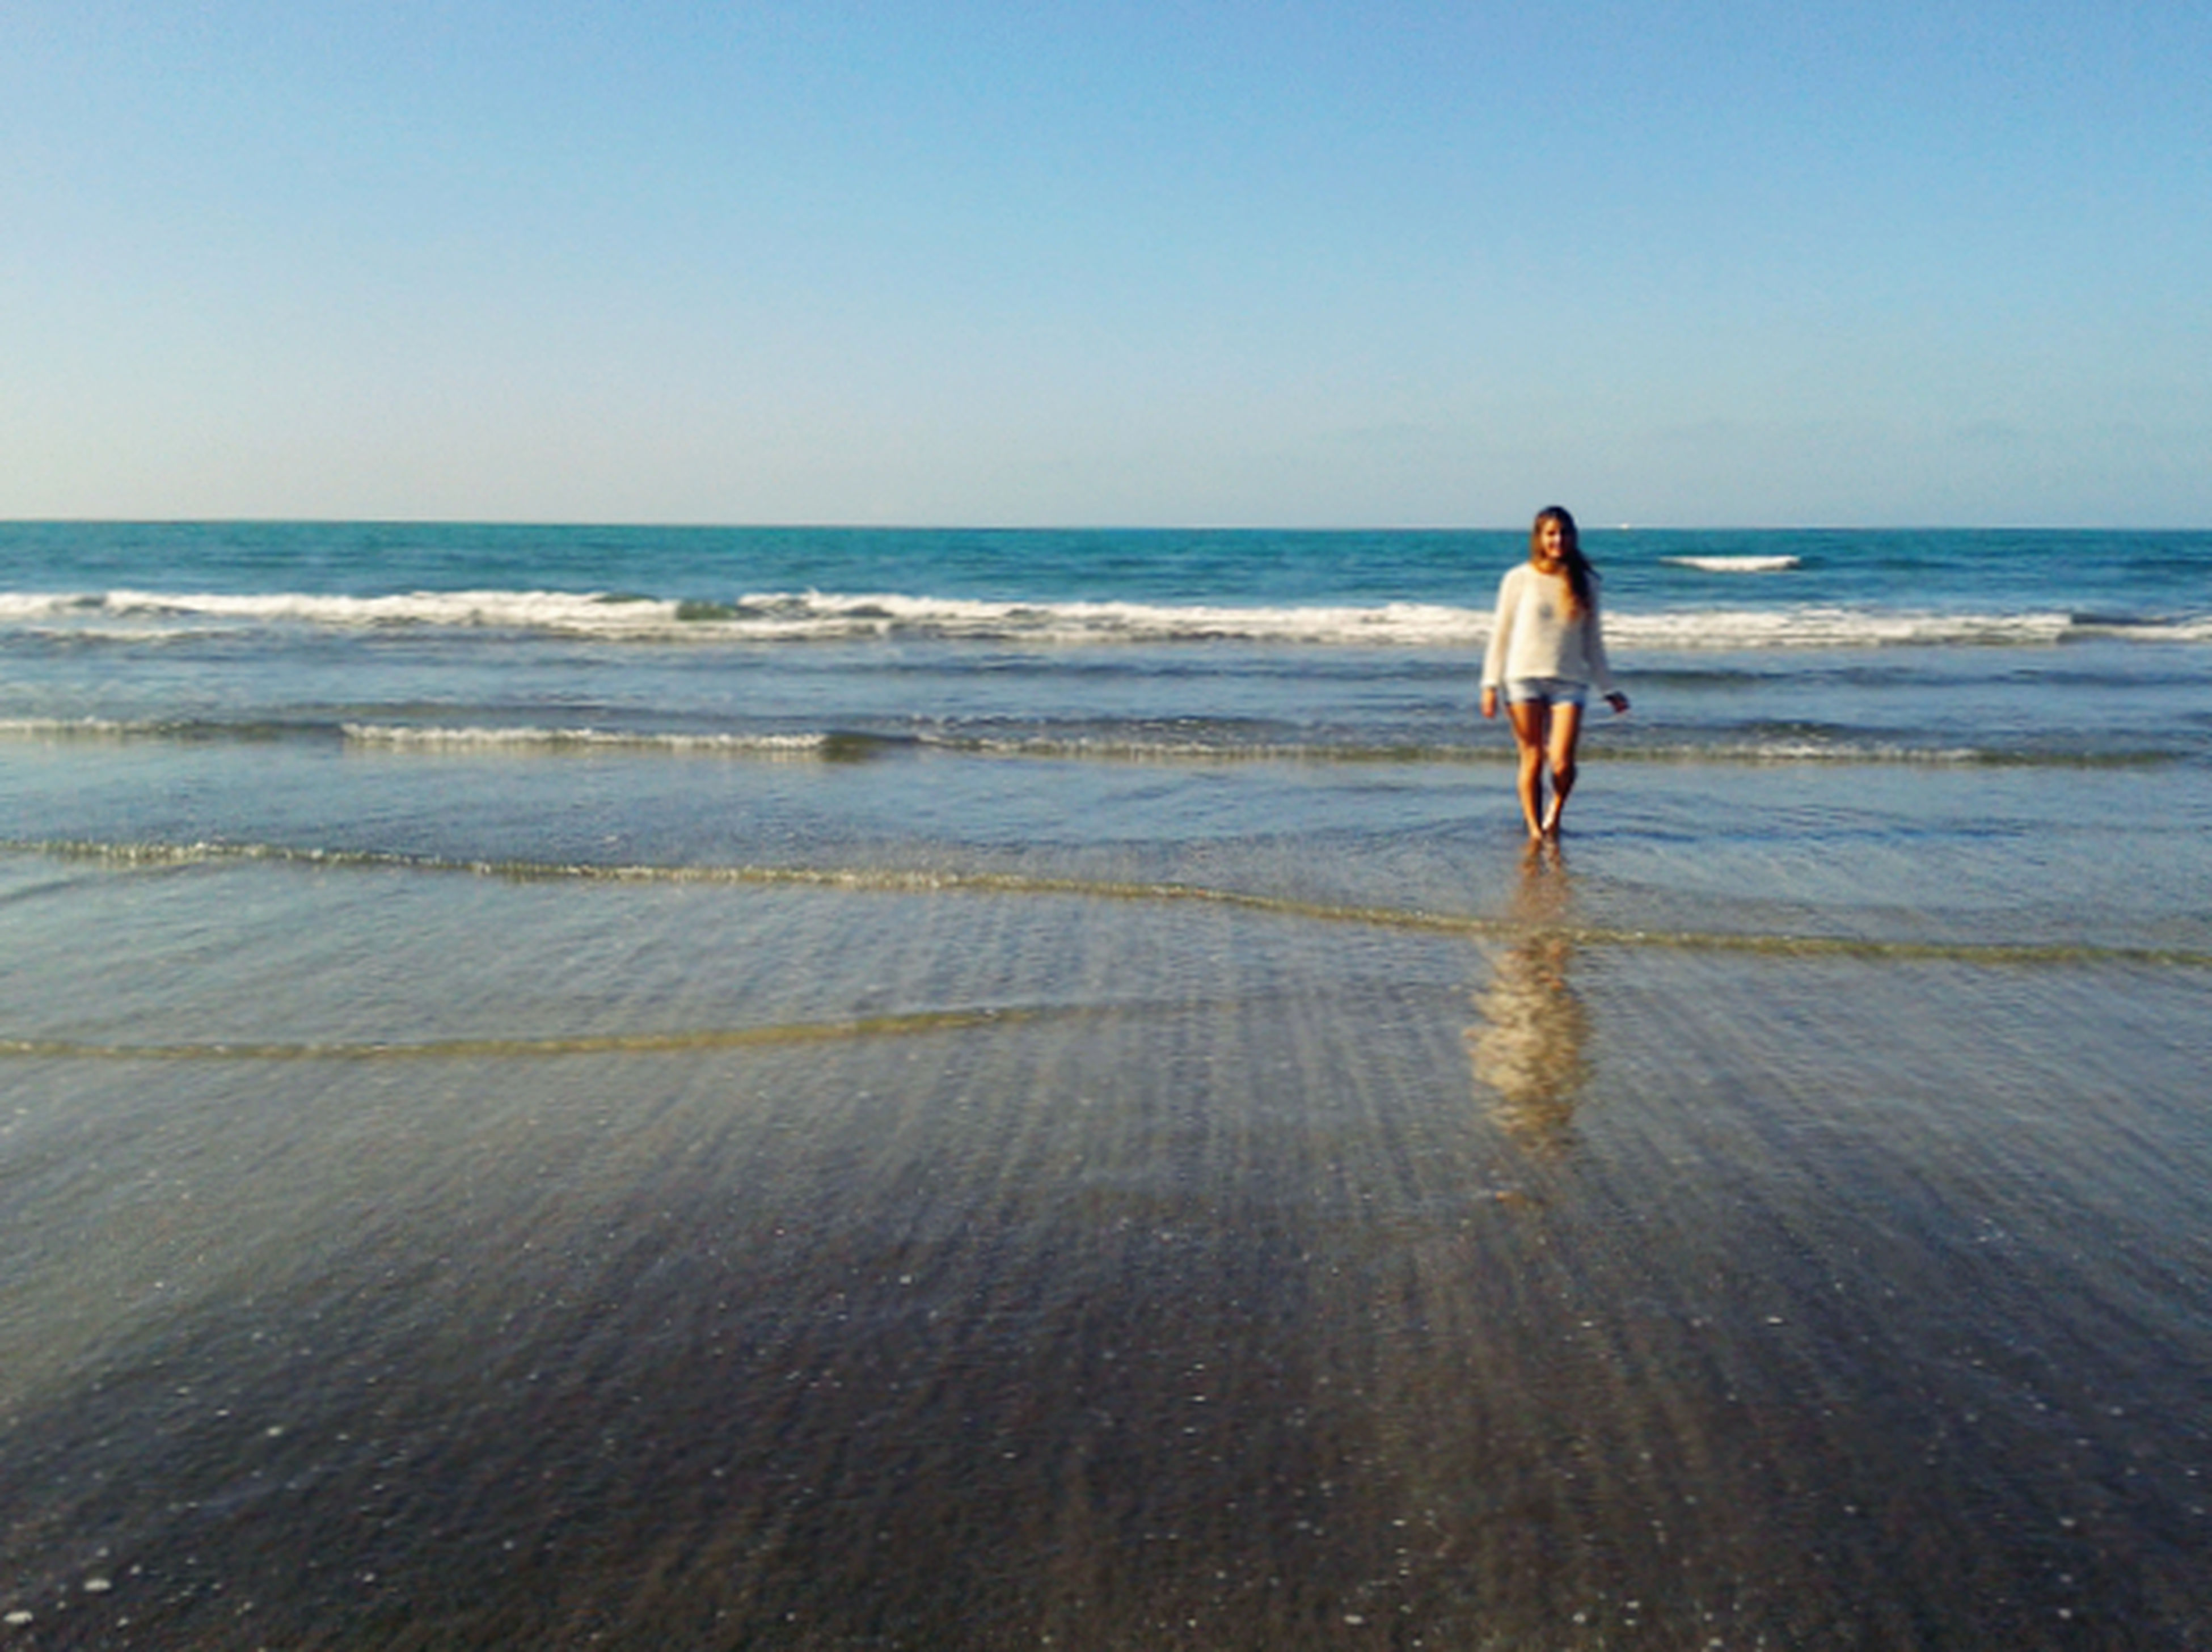 sea, horizon over water, water, beach, clear sky, shore, copy space, rear view, sand, wave, full length, walking, leisure activity, lifestyles, standing, nature, scenics, beauty in nature